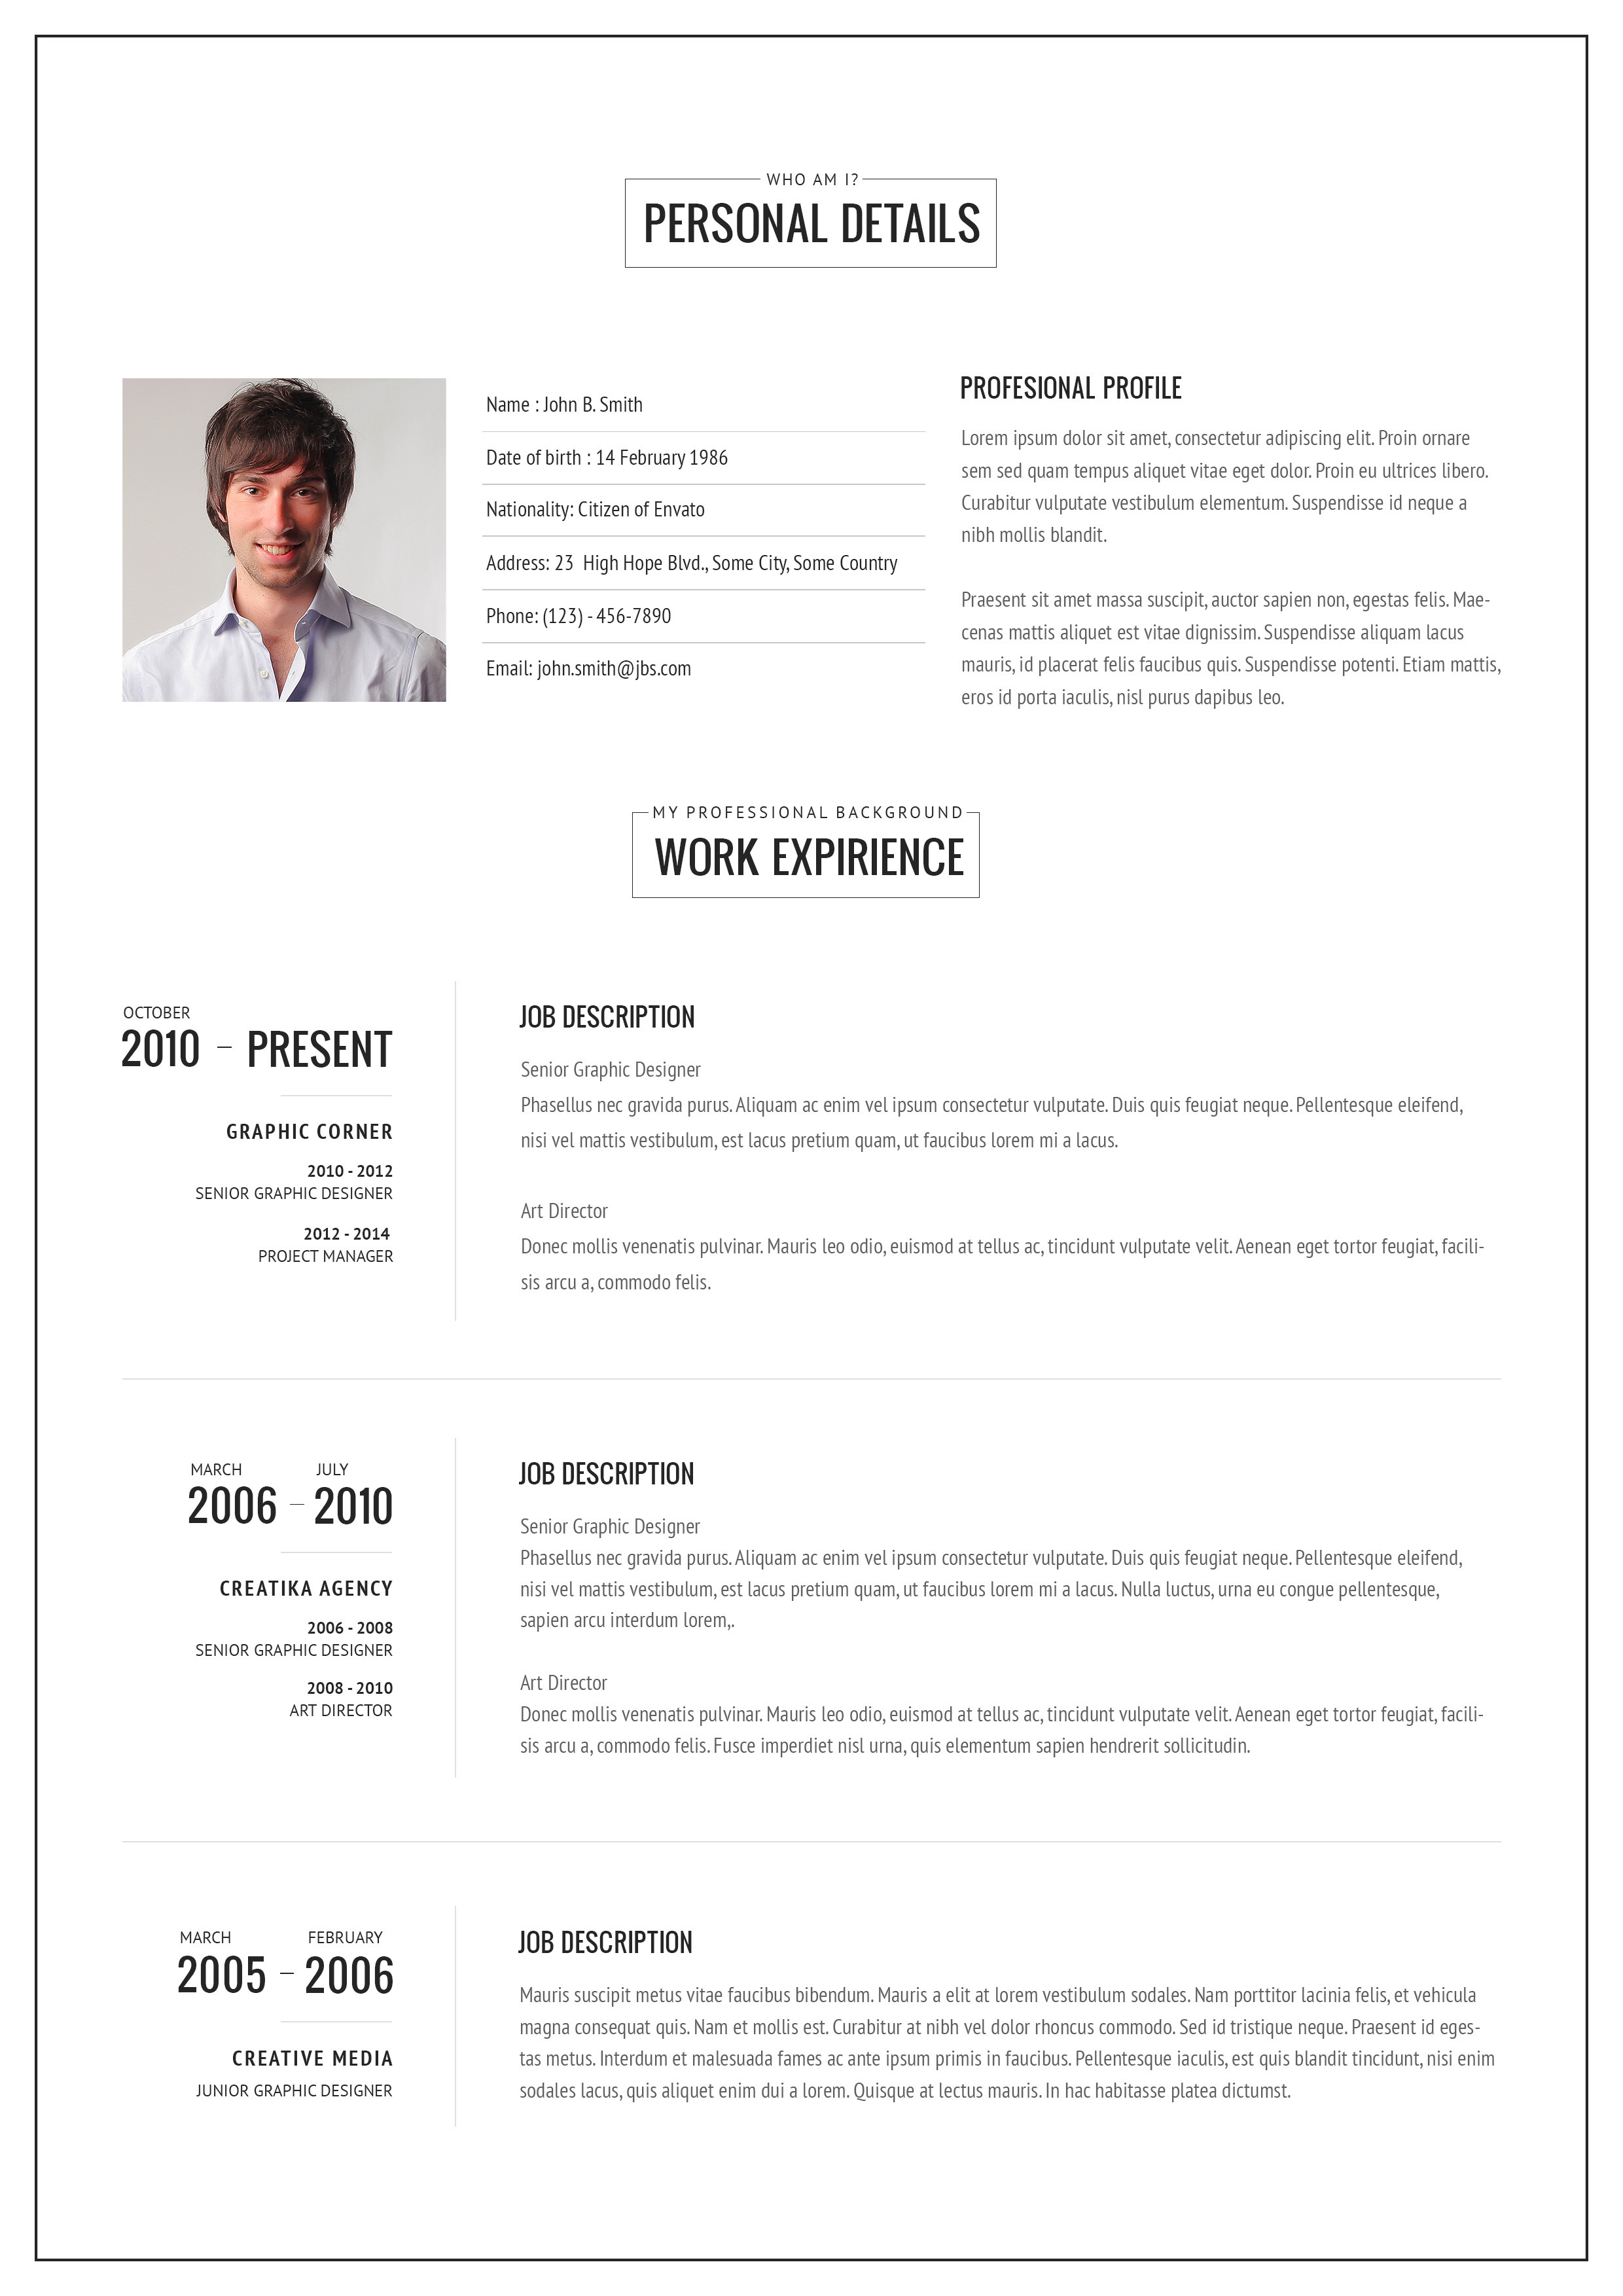 Cute 1 Year Experience Resume Format For Java Tiny 1.5 Binder Spine Template Round 100 Template 15 Year Old Resume Sample Young 18 Month Calendar Template Blue2 Inch Heart Template Sport Chek Resume Sample | Free Resume Maker Word